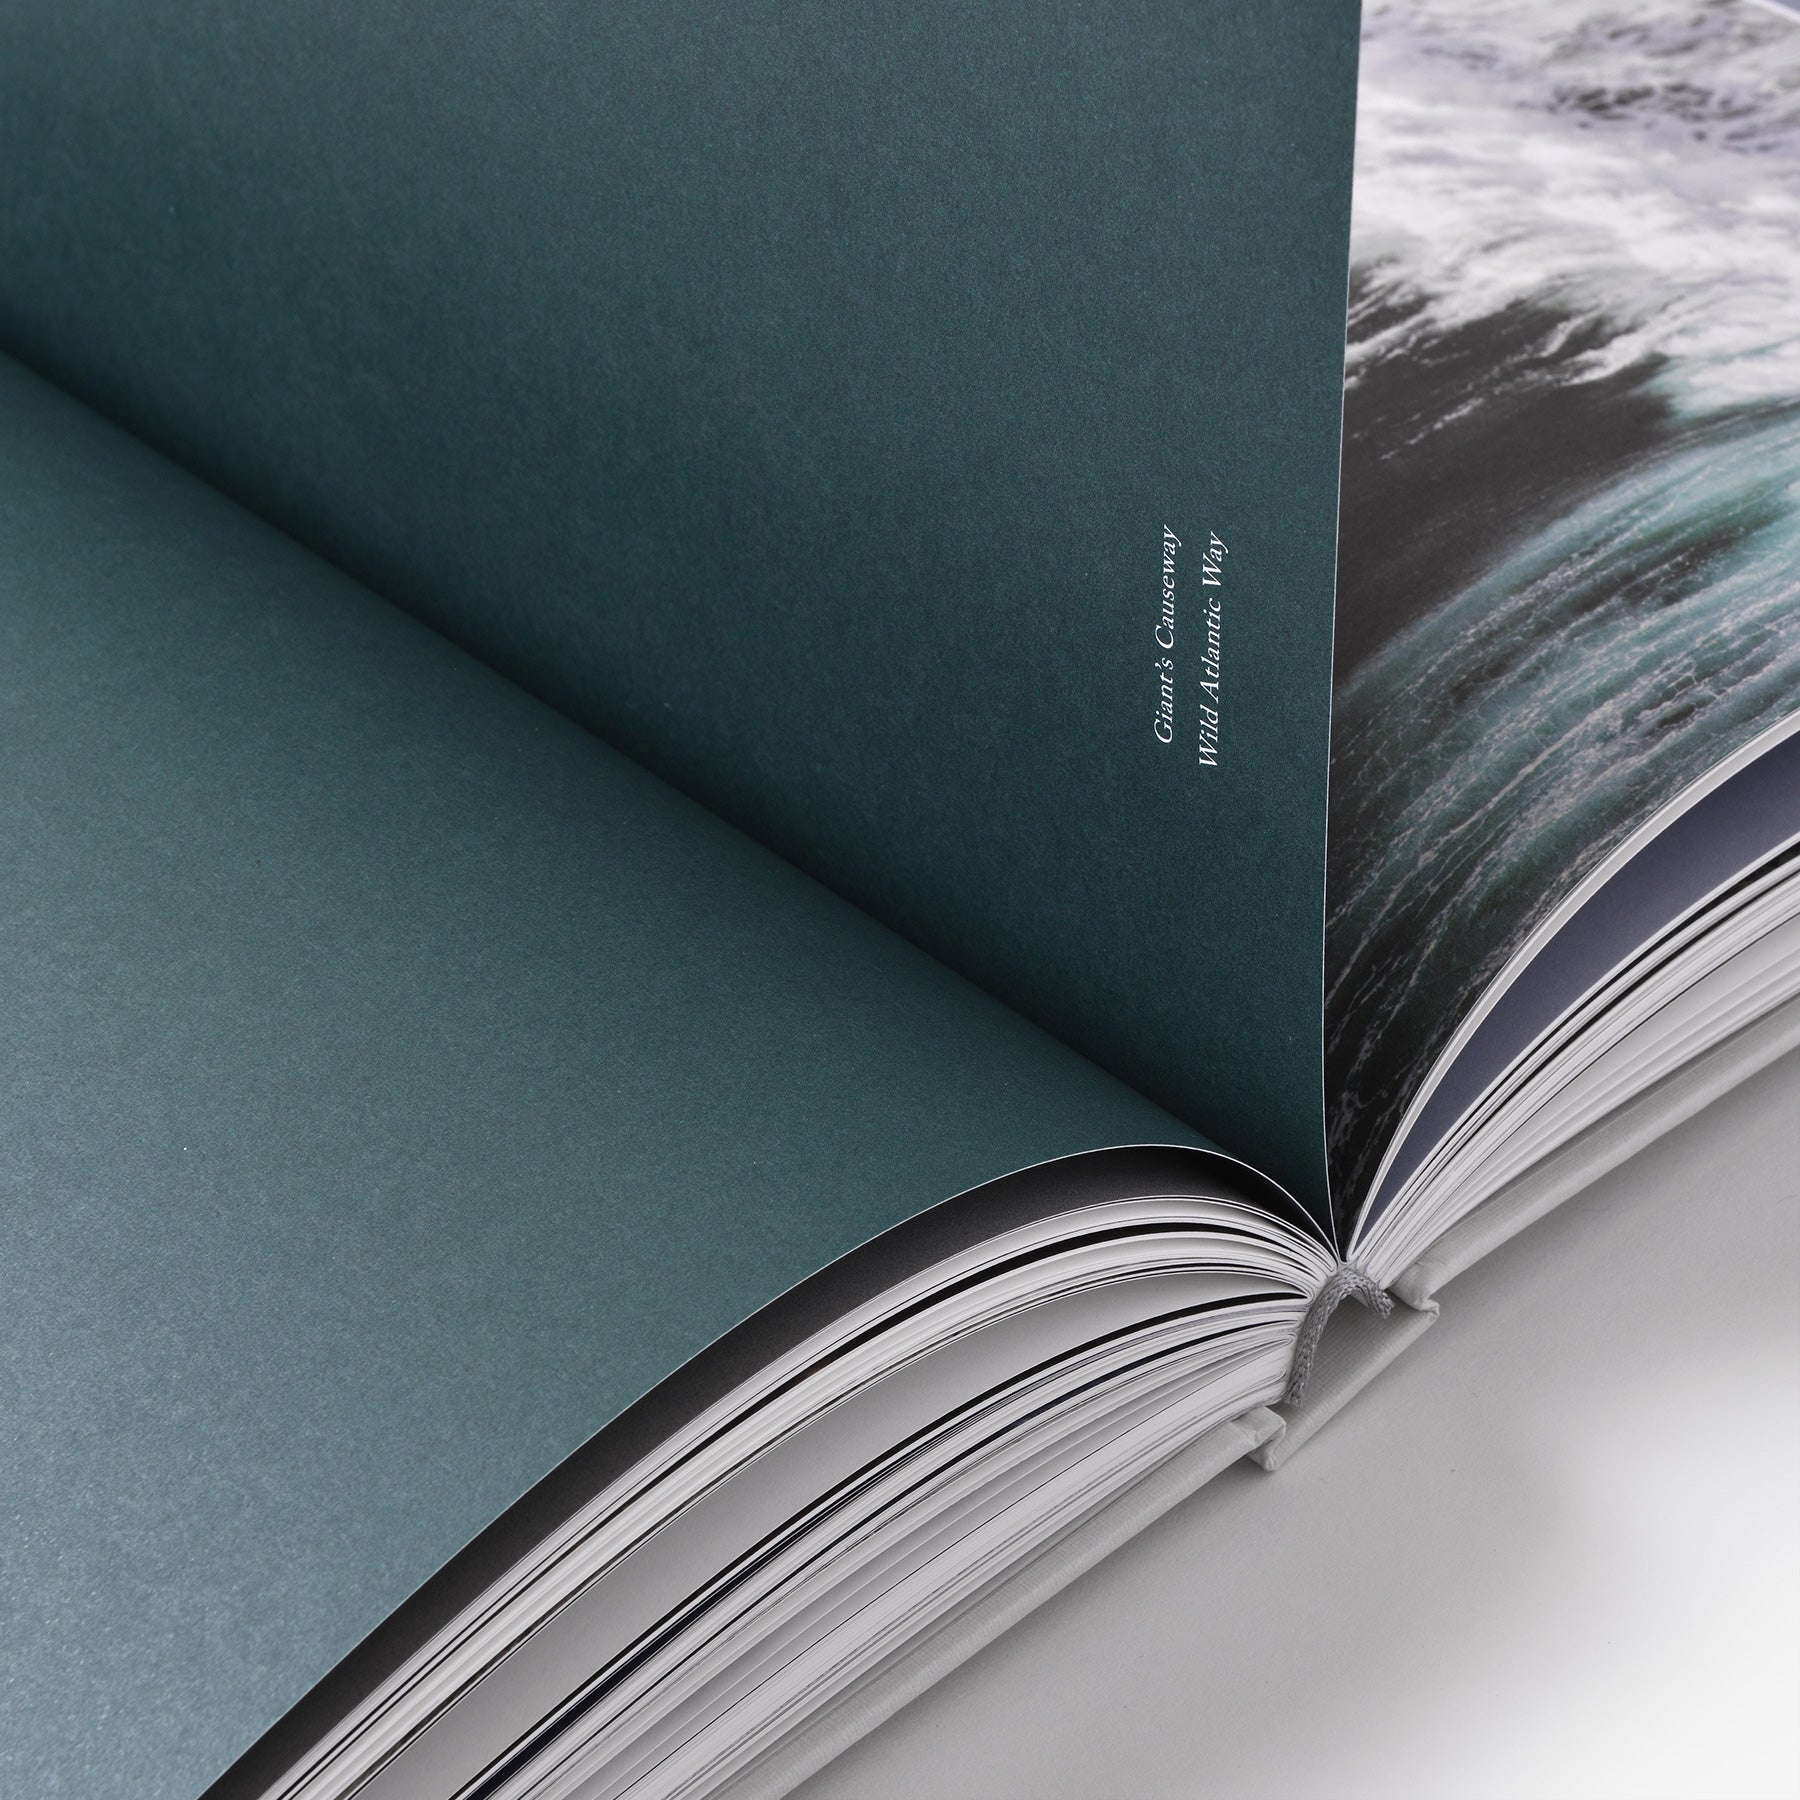 Pages: 196 | Dimensions: 152 × 228 mm / 6 × 9"